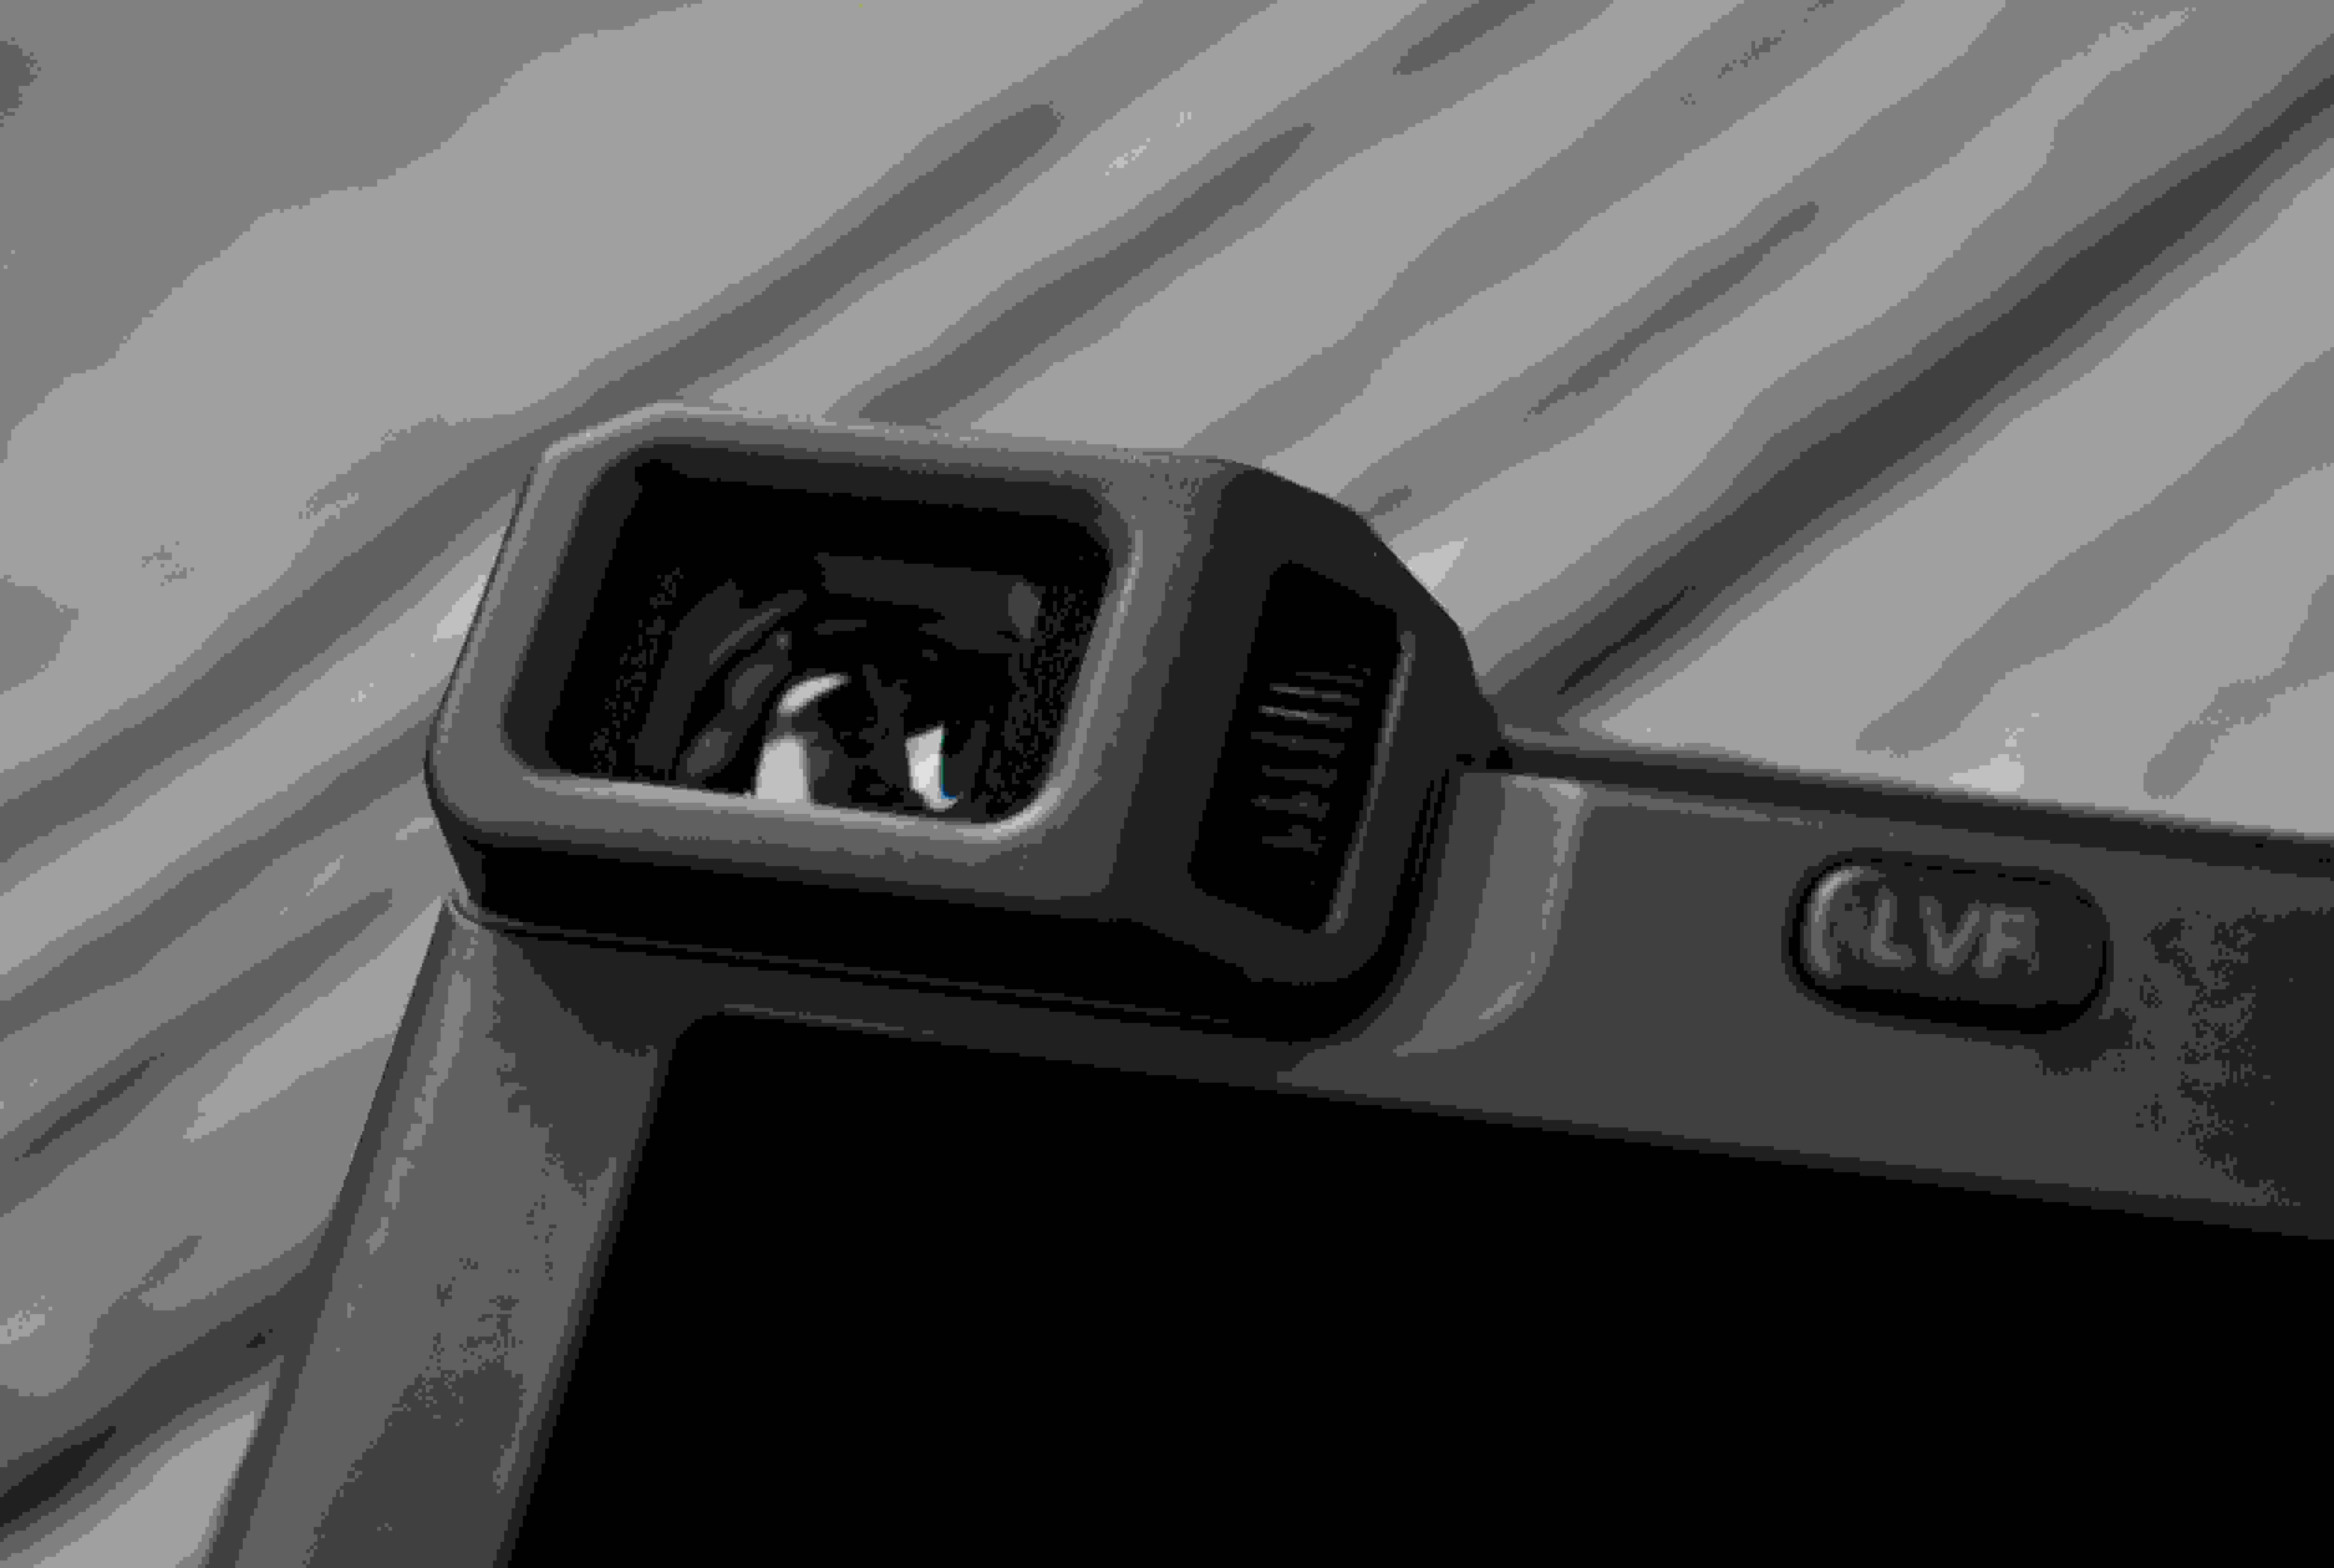 A picture of the Panasonic Lumix ZS40's viewfinder.